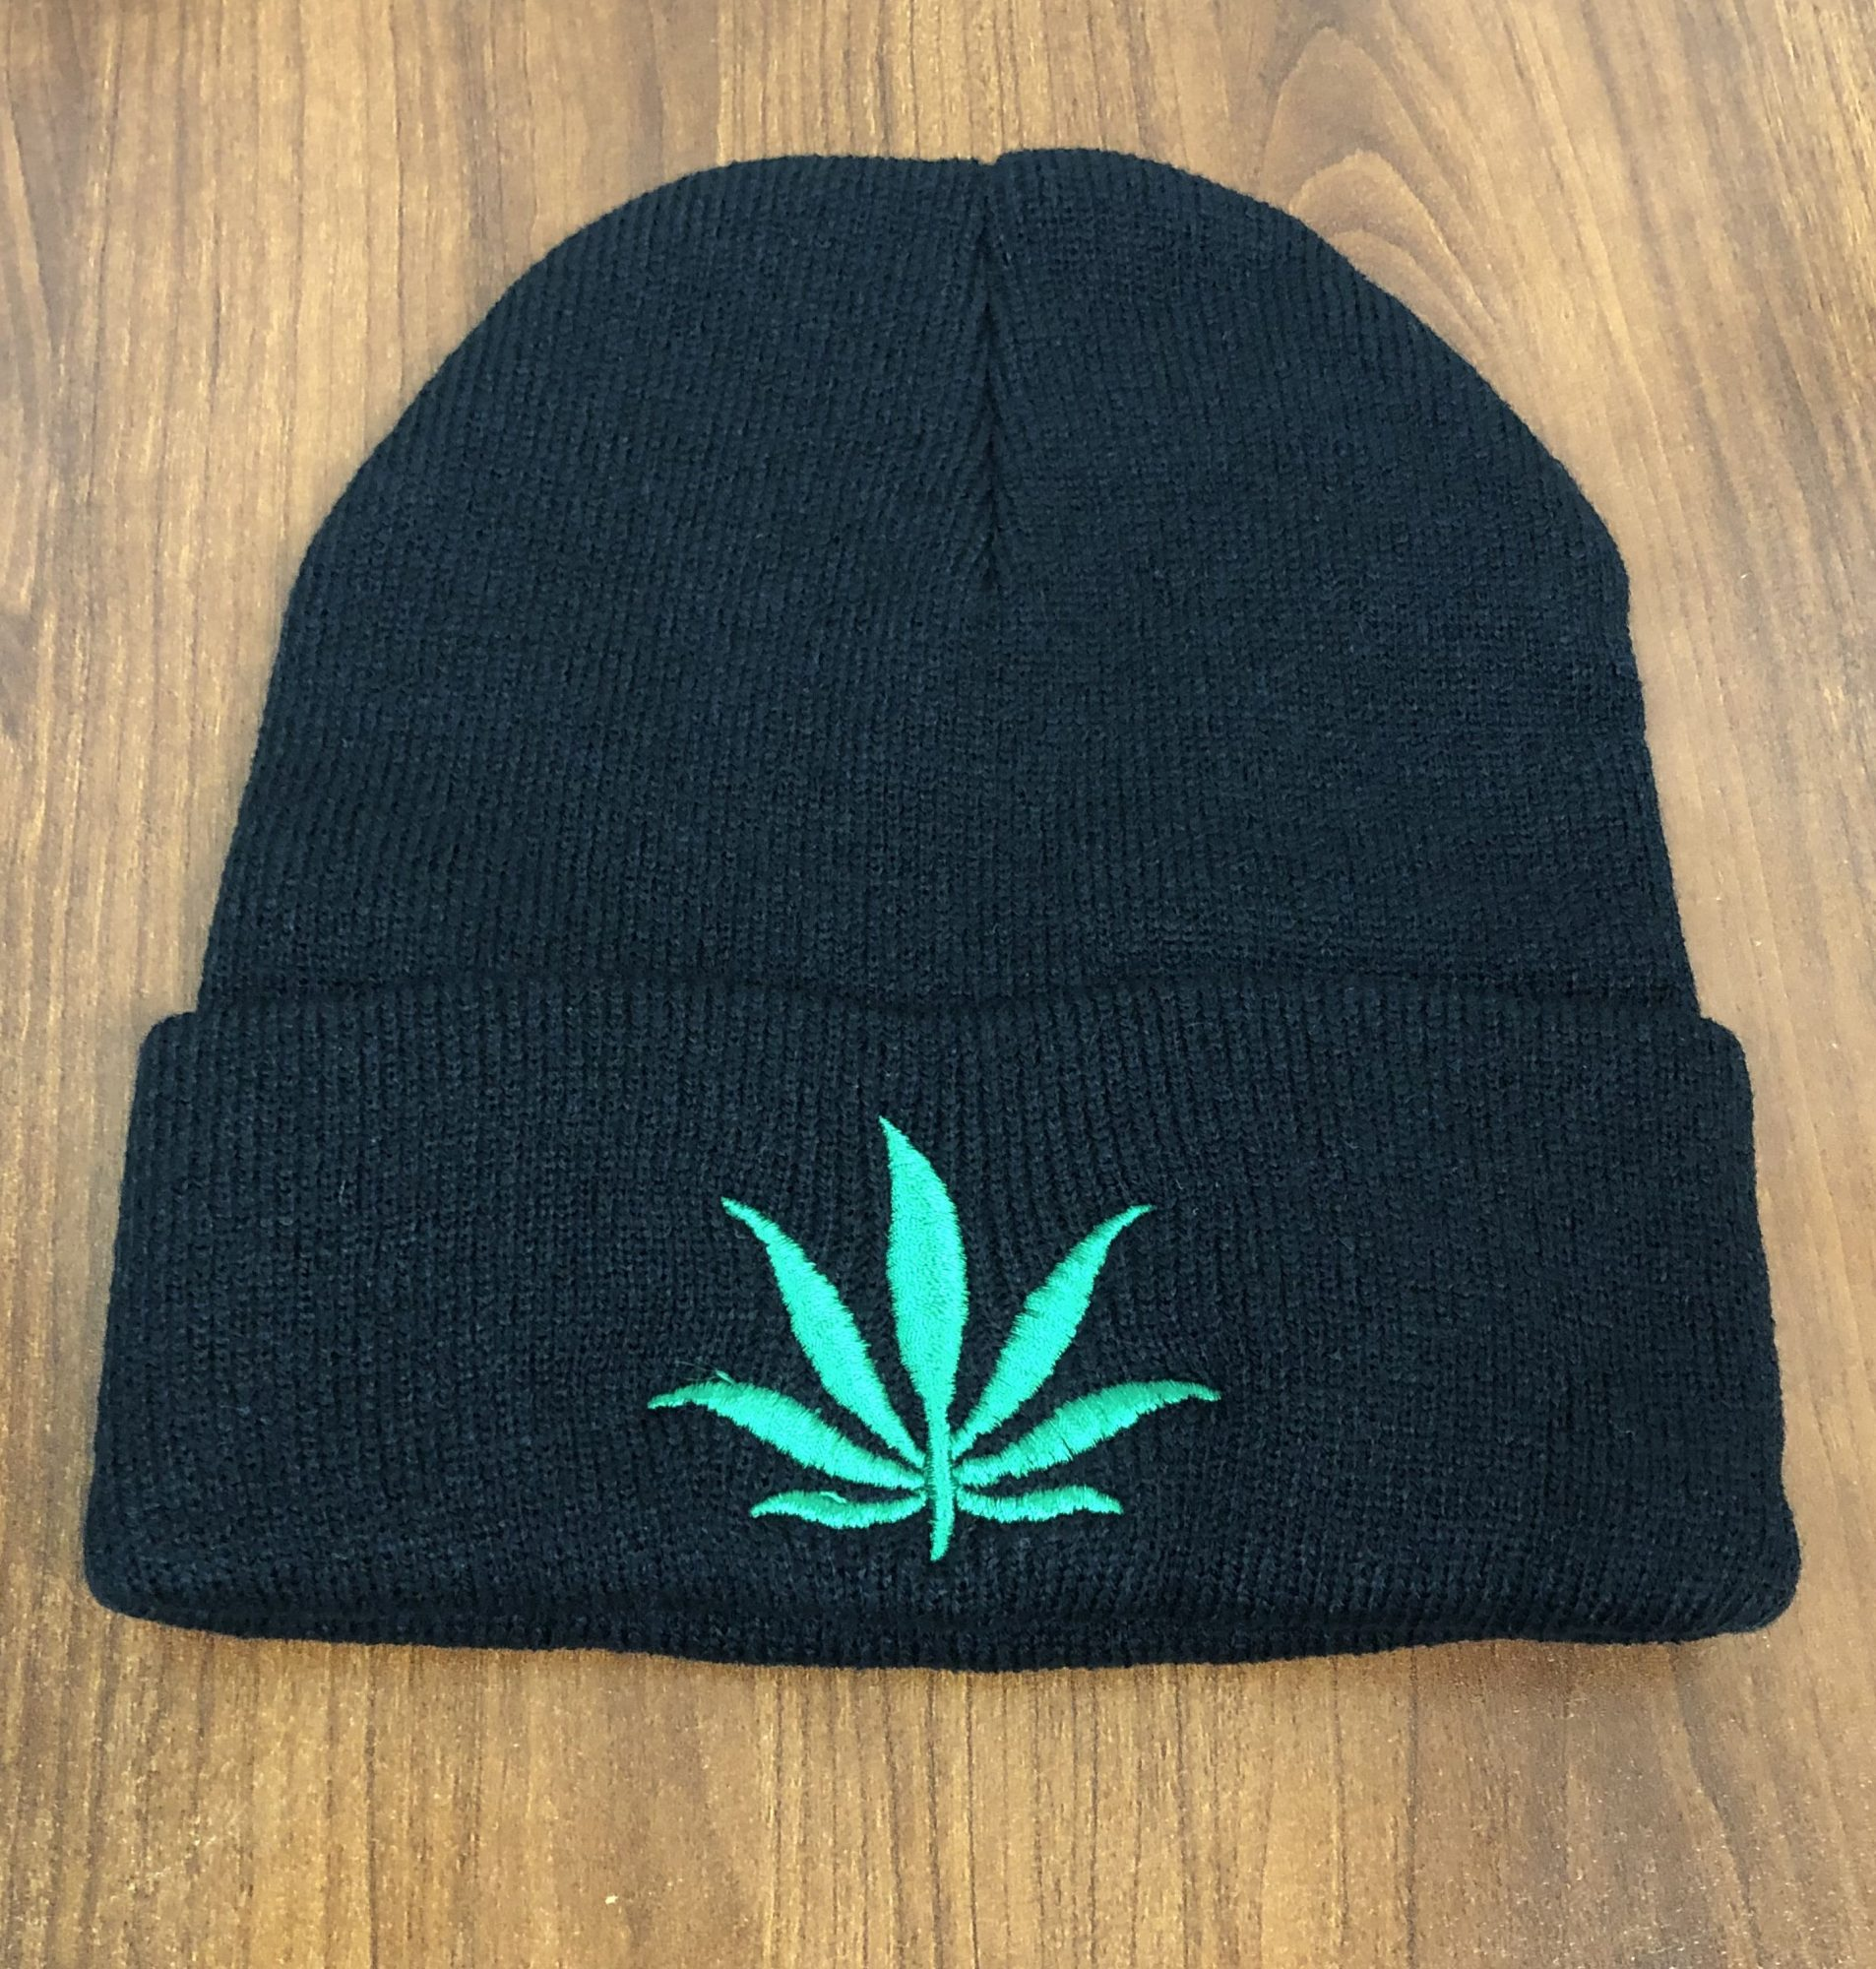 Cannabis leaf-themed winter hat